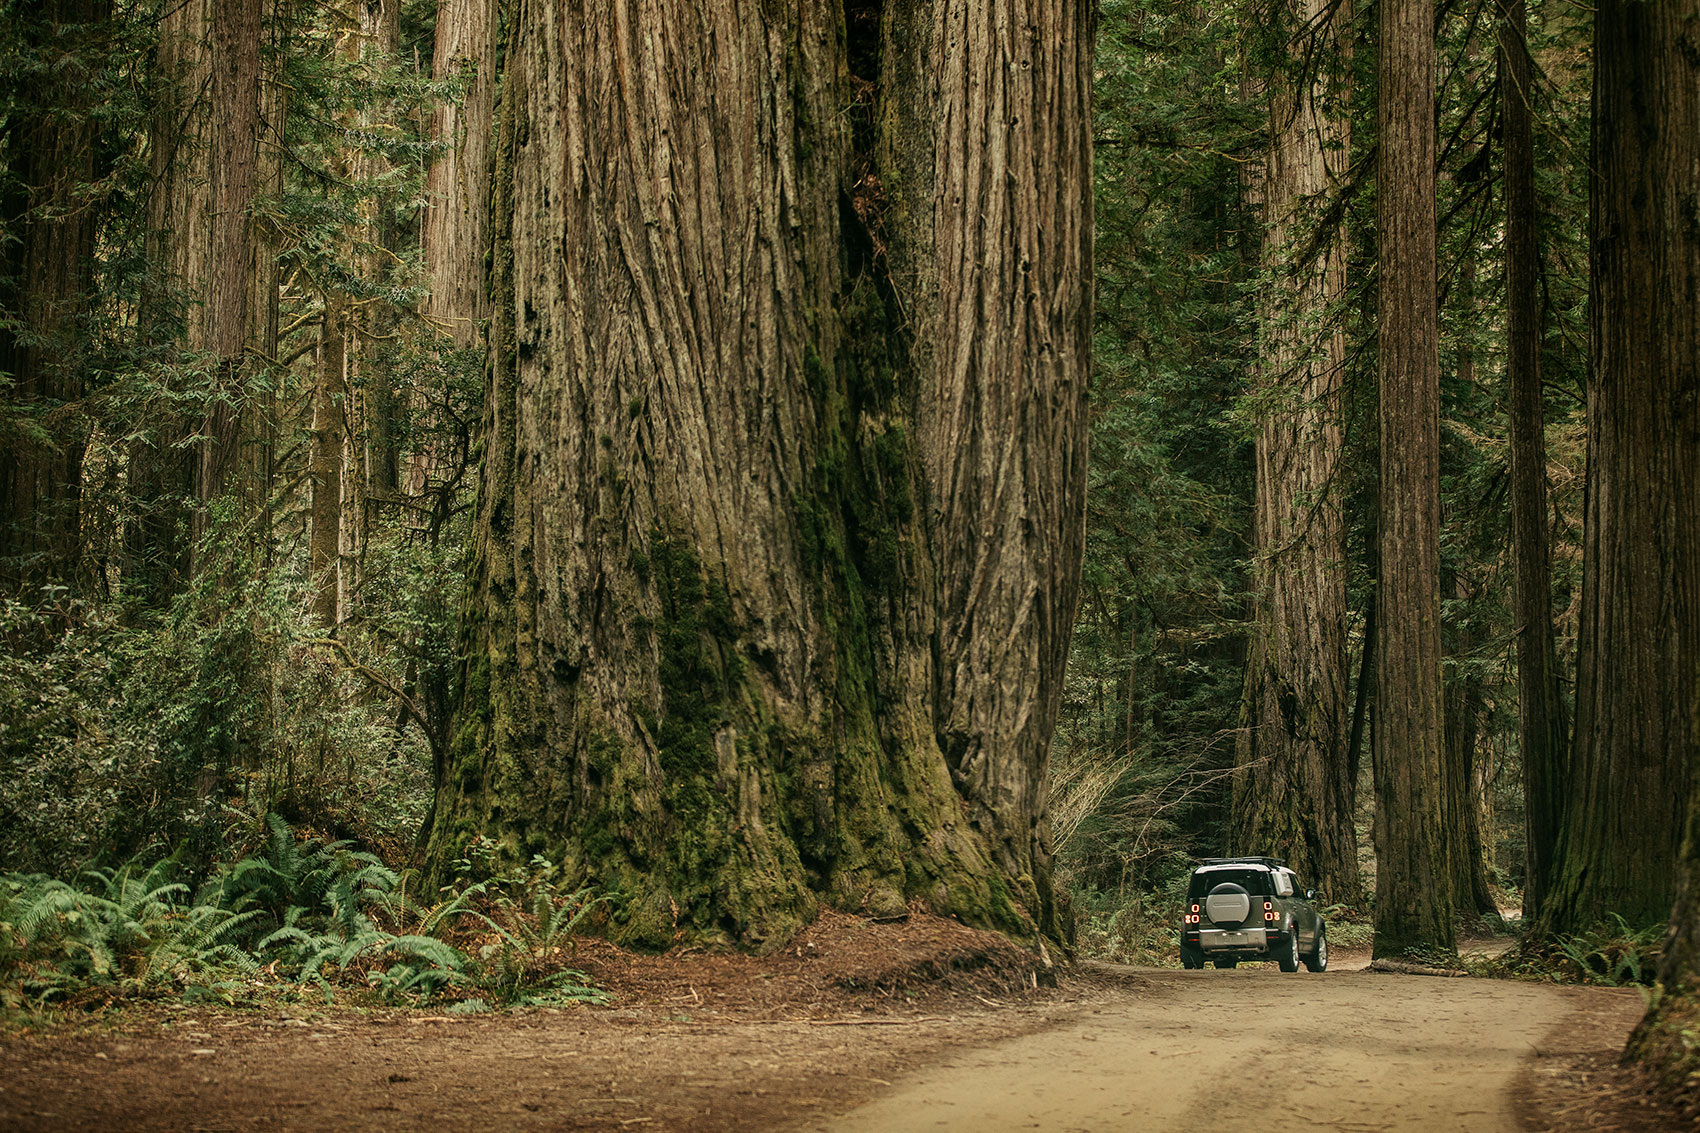 The new 2020 Land Rover Defender 110 amongst the giant redwoods